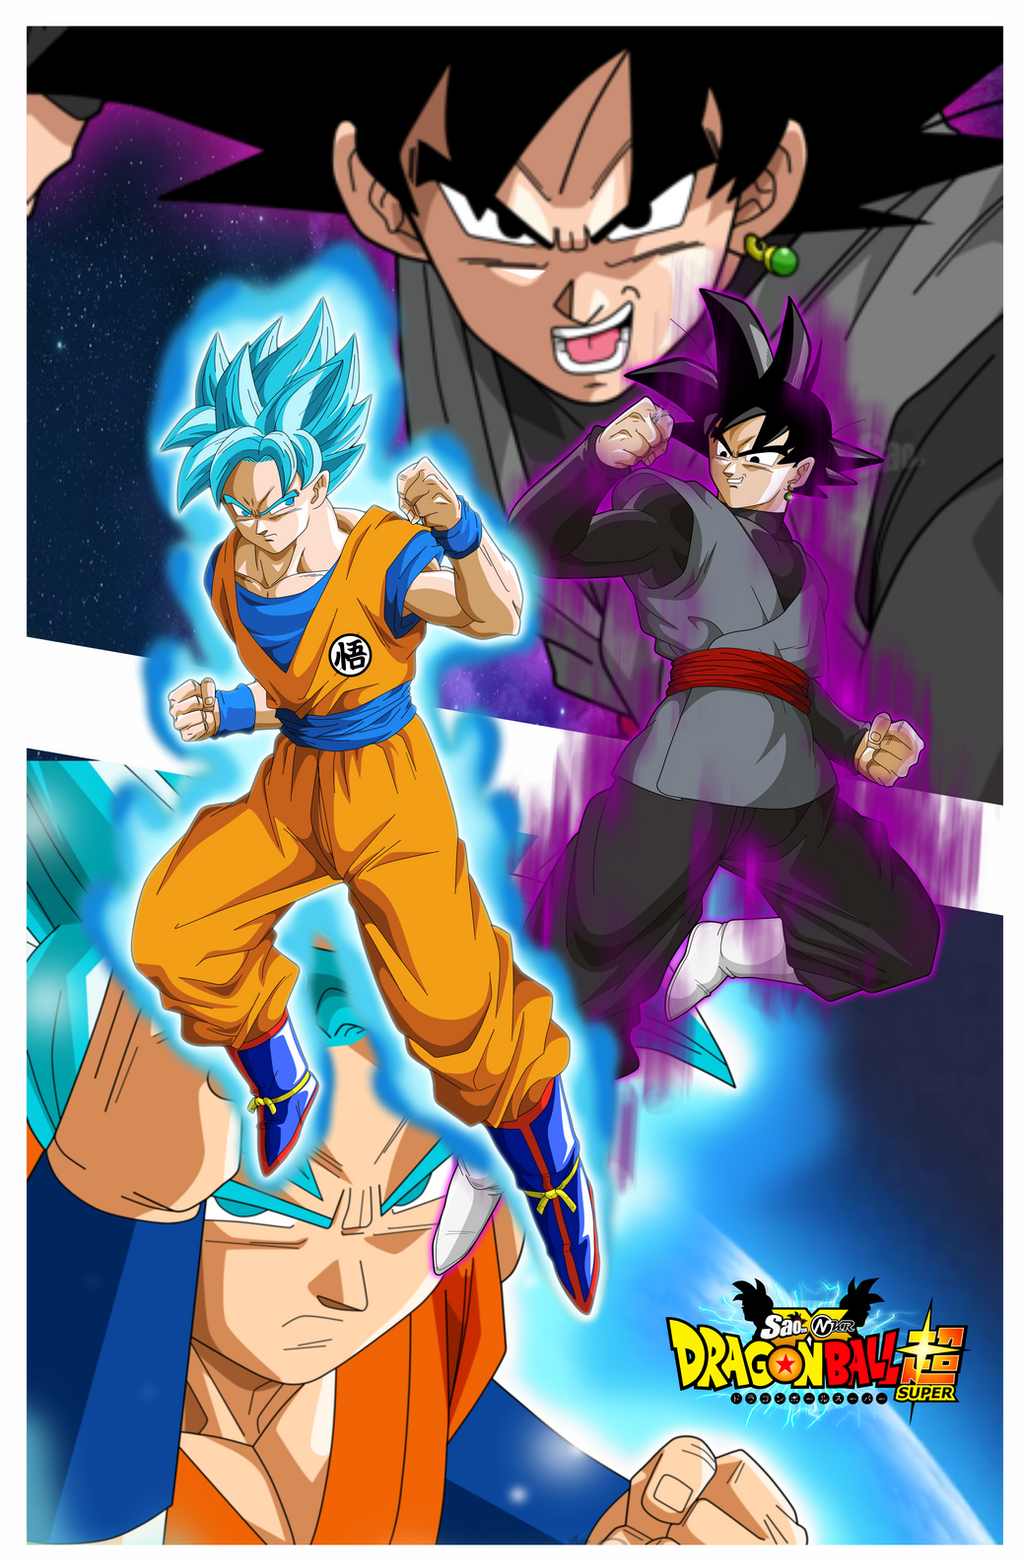 posters de dragon ball hd parte 2 taringa. Black Bedroom Furniture Sets. Home Design Ideas